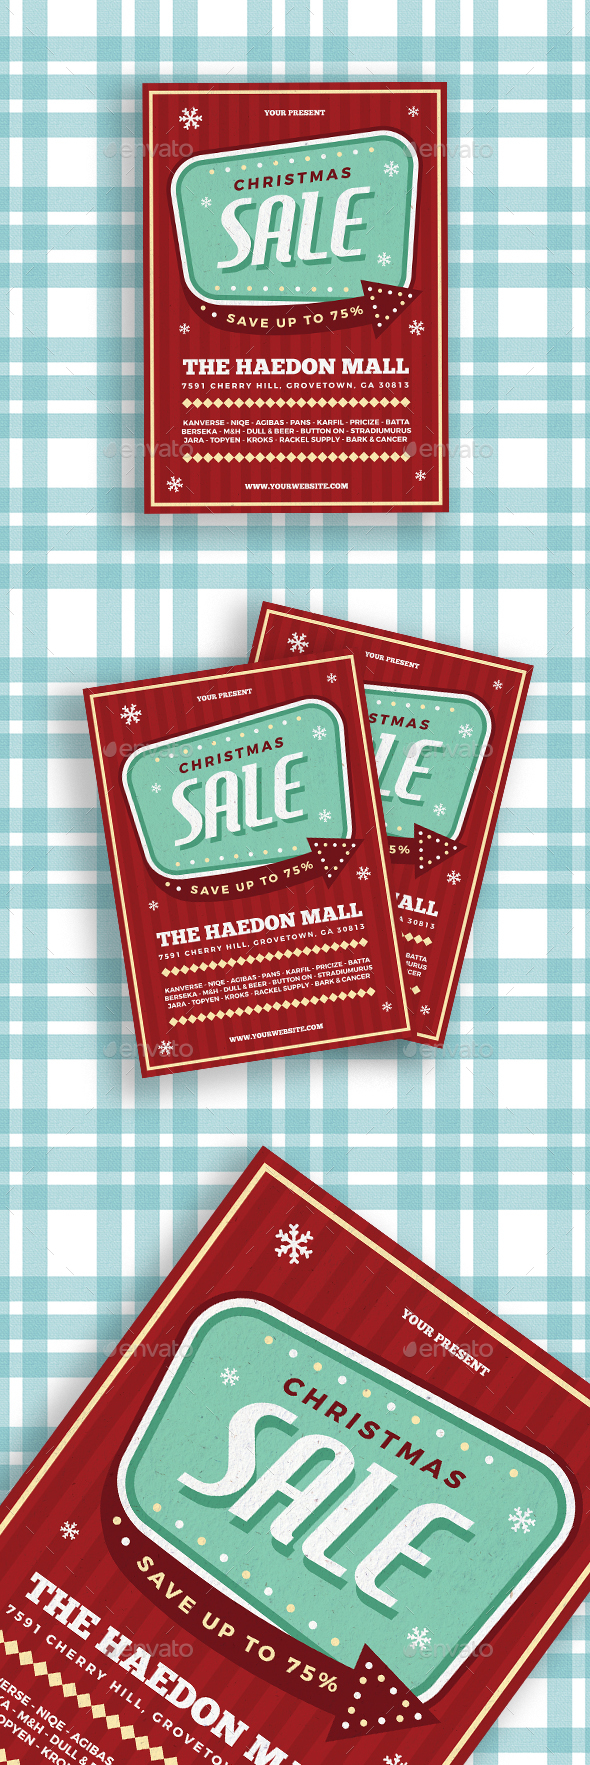 Retro Christmas Sale Flyer - Commerce Flyers